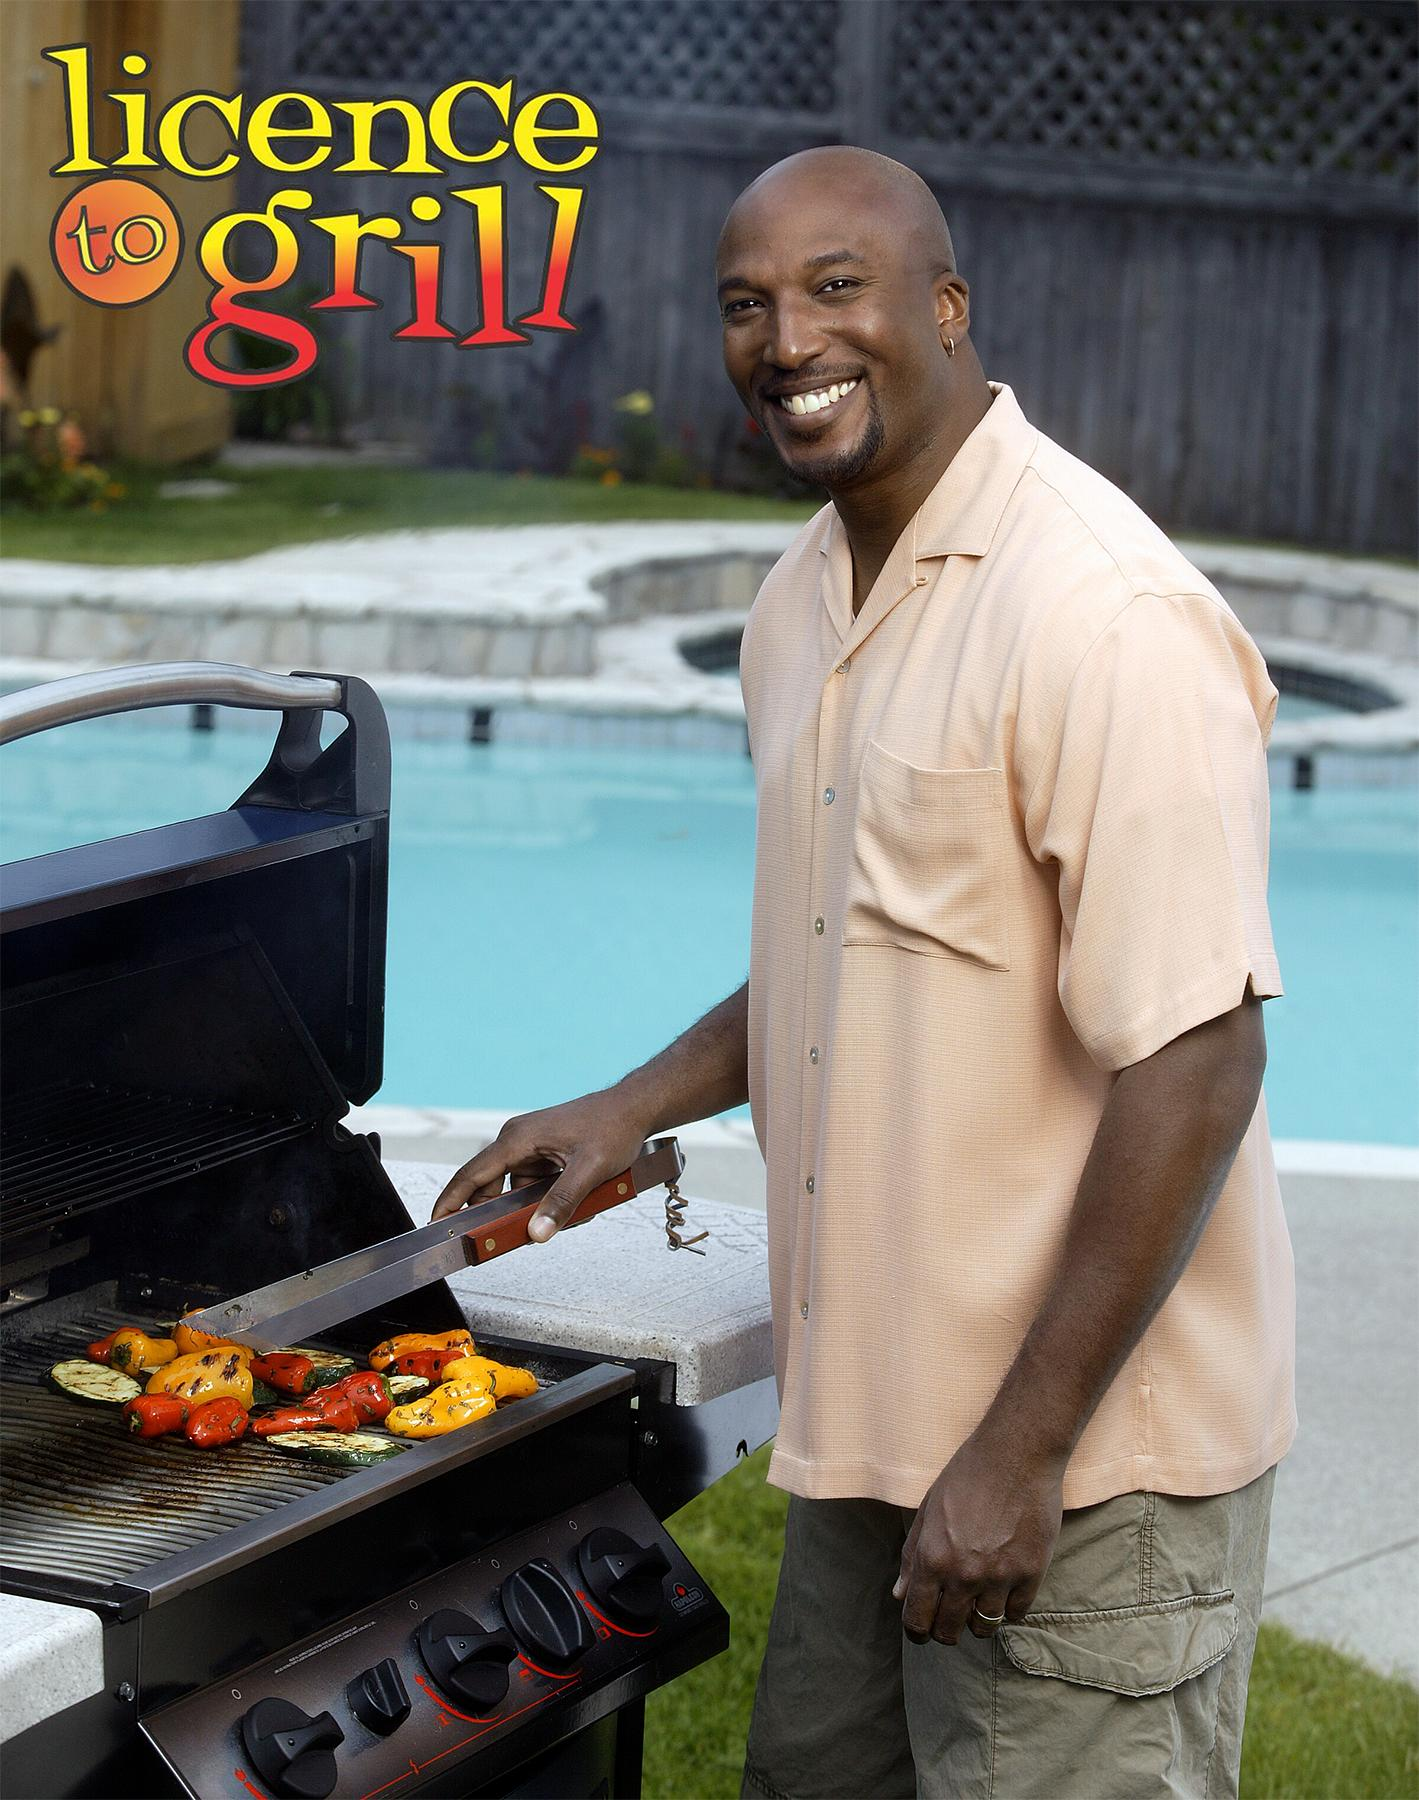 Licence to Grill (TV Series 2003– ) - IMDb